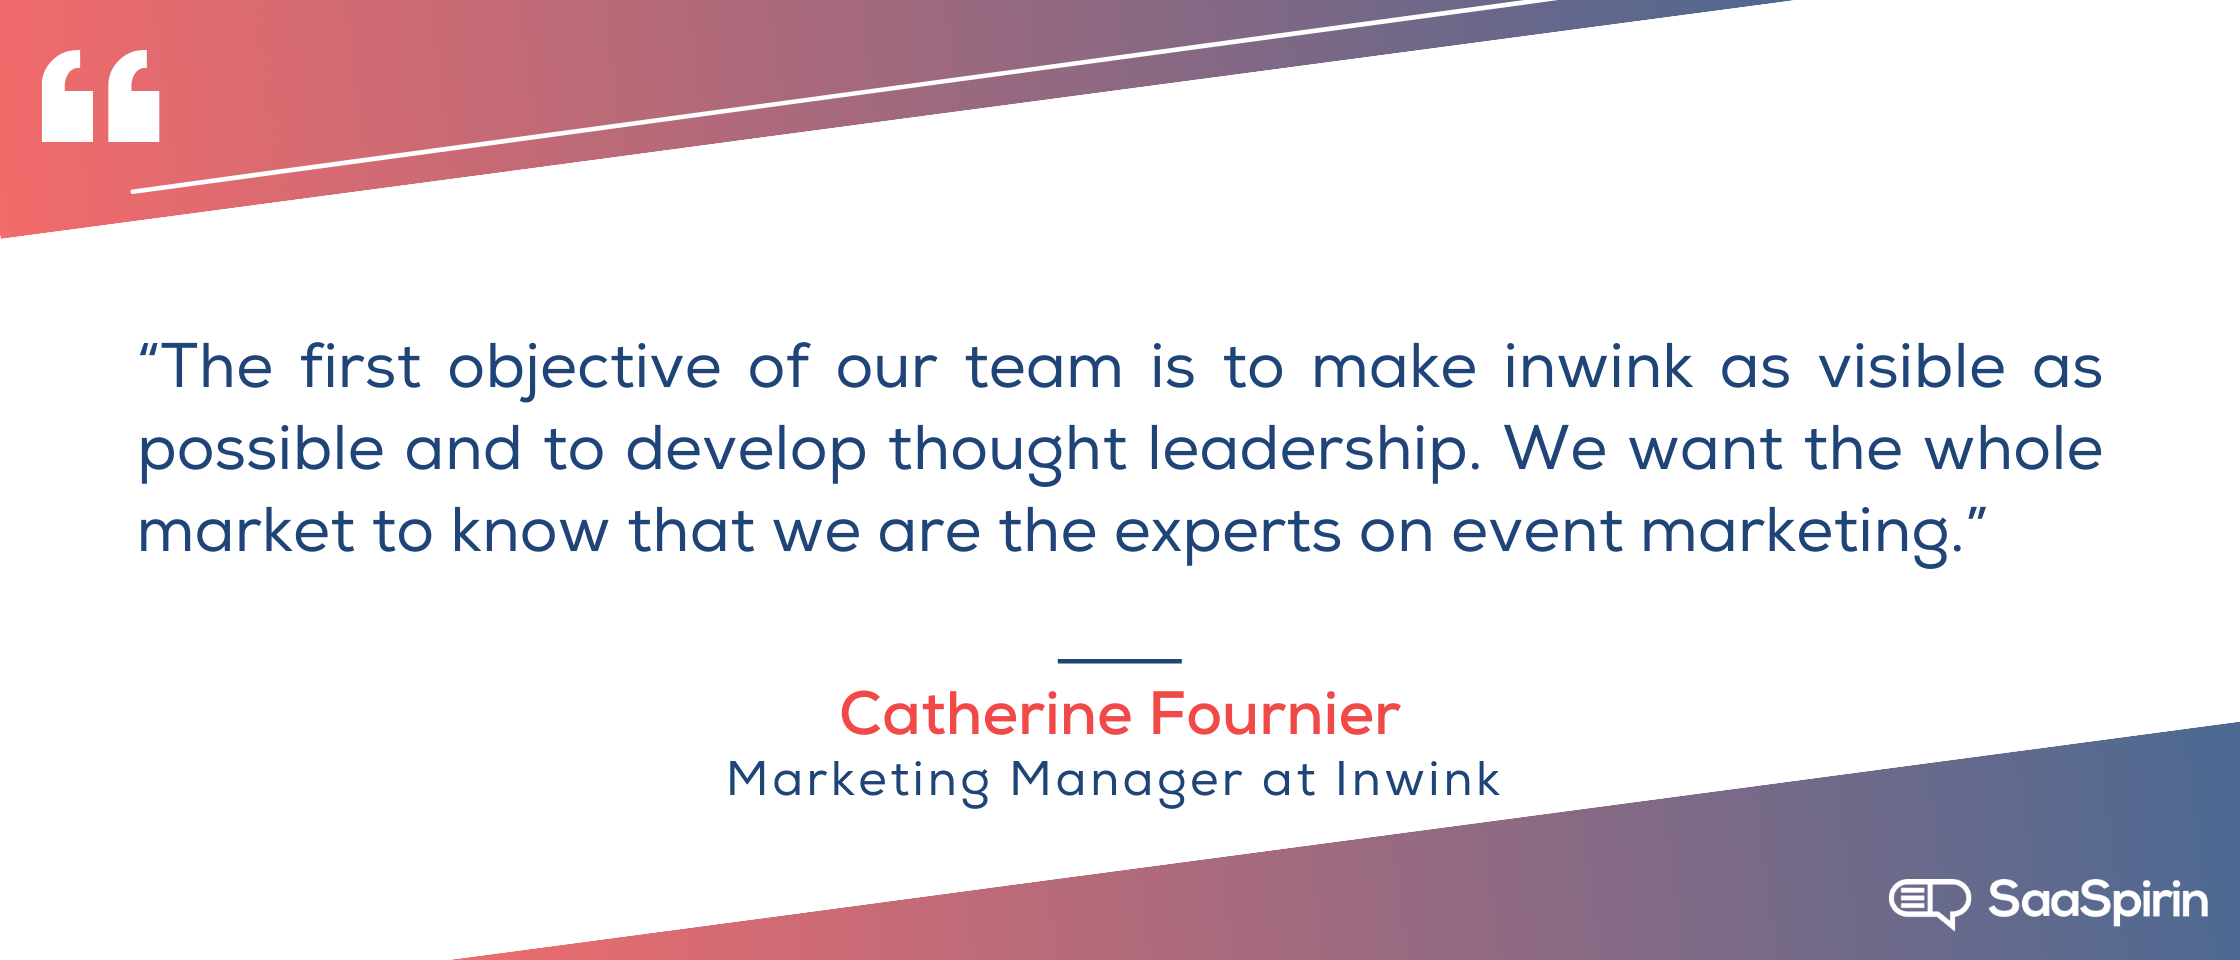 The-first-objective-of-our-team-is-to-make-inwink-as-visible-as-possible-and-to-develop-thought-leadership-We-want-the-whole-market-to-know-that-we-are-the-experts-on-event-marketing.png